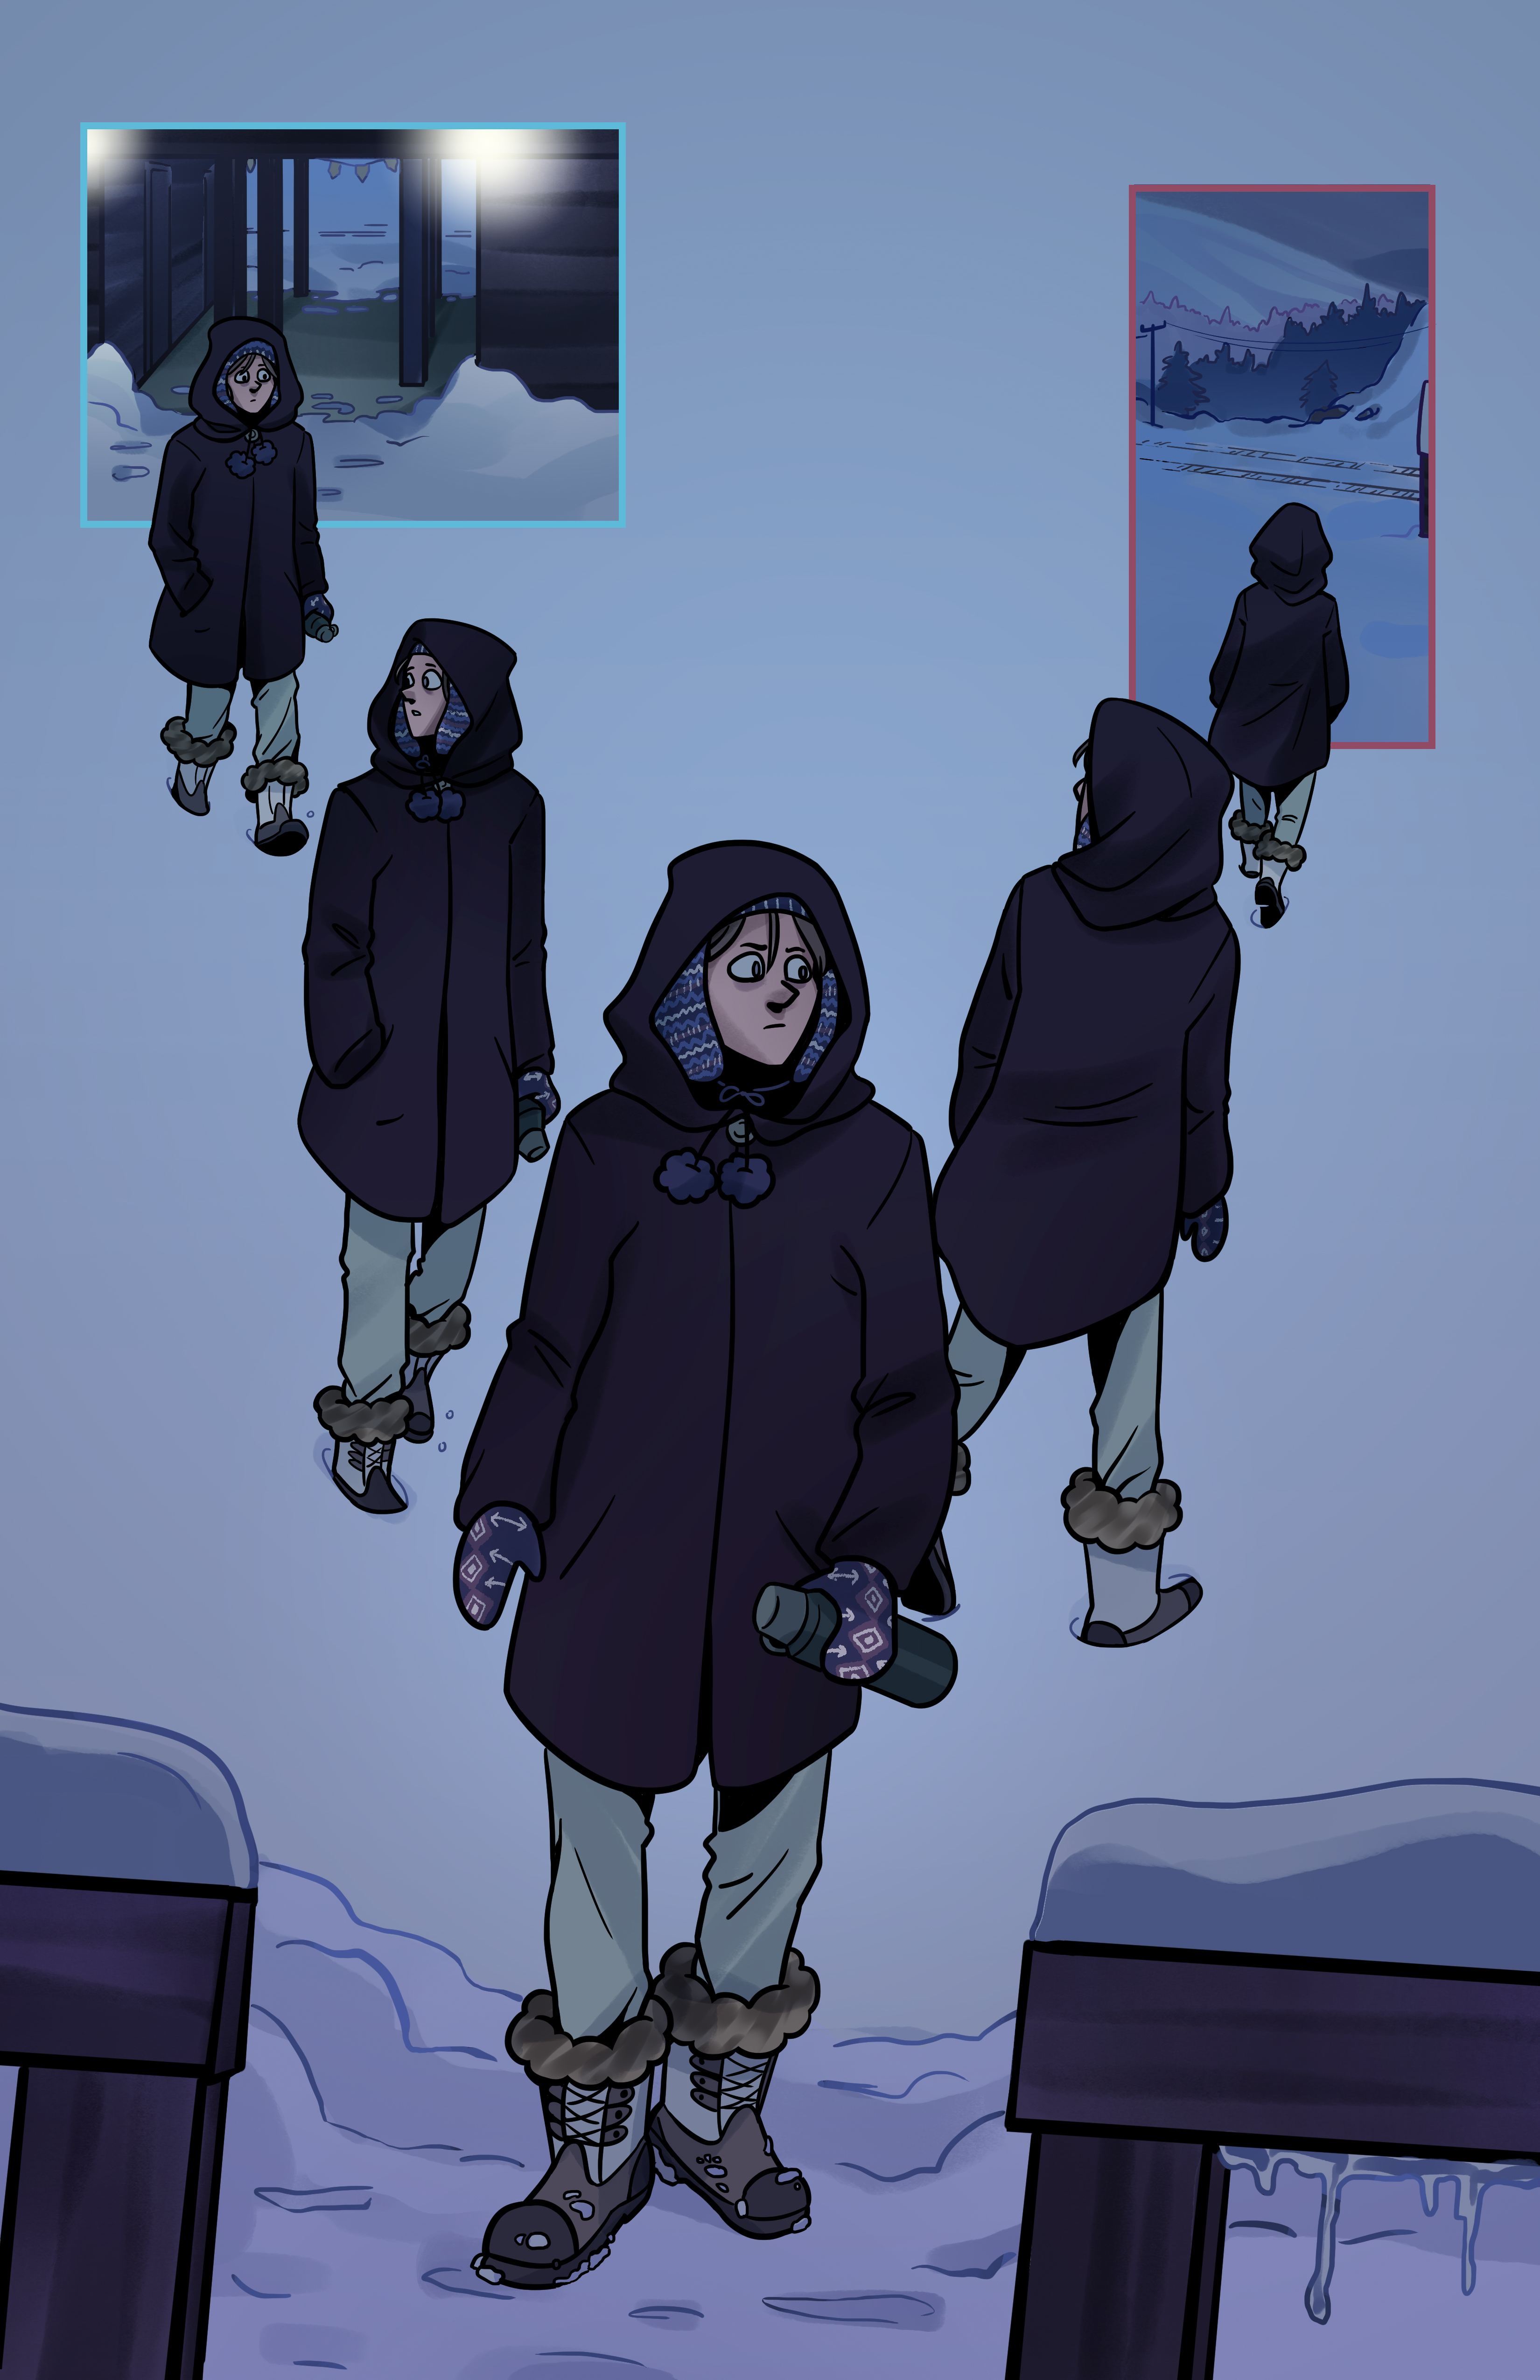 Corin walks to his house, but before entering, turns around and heads towards the woods.